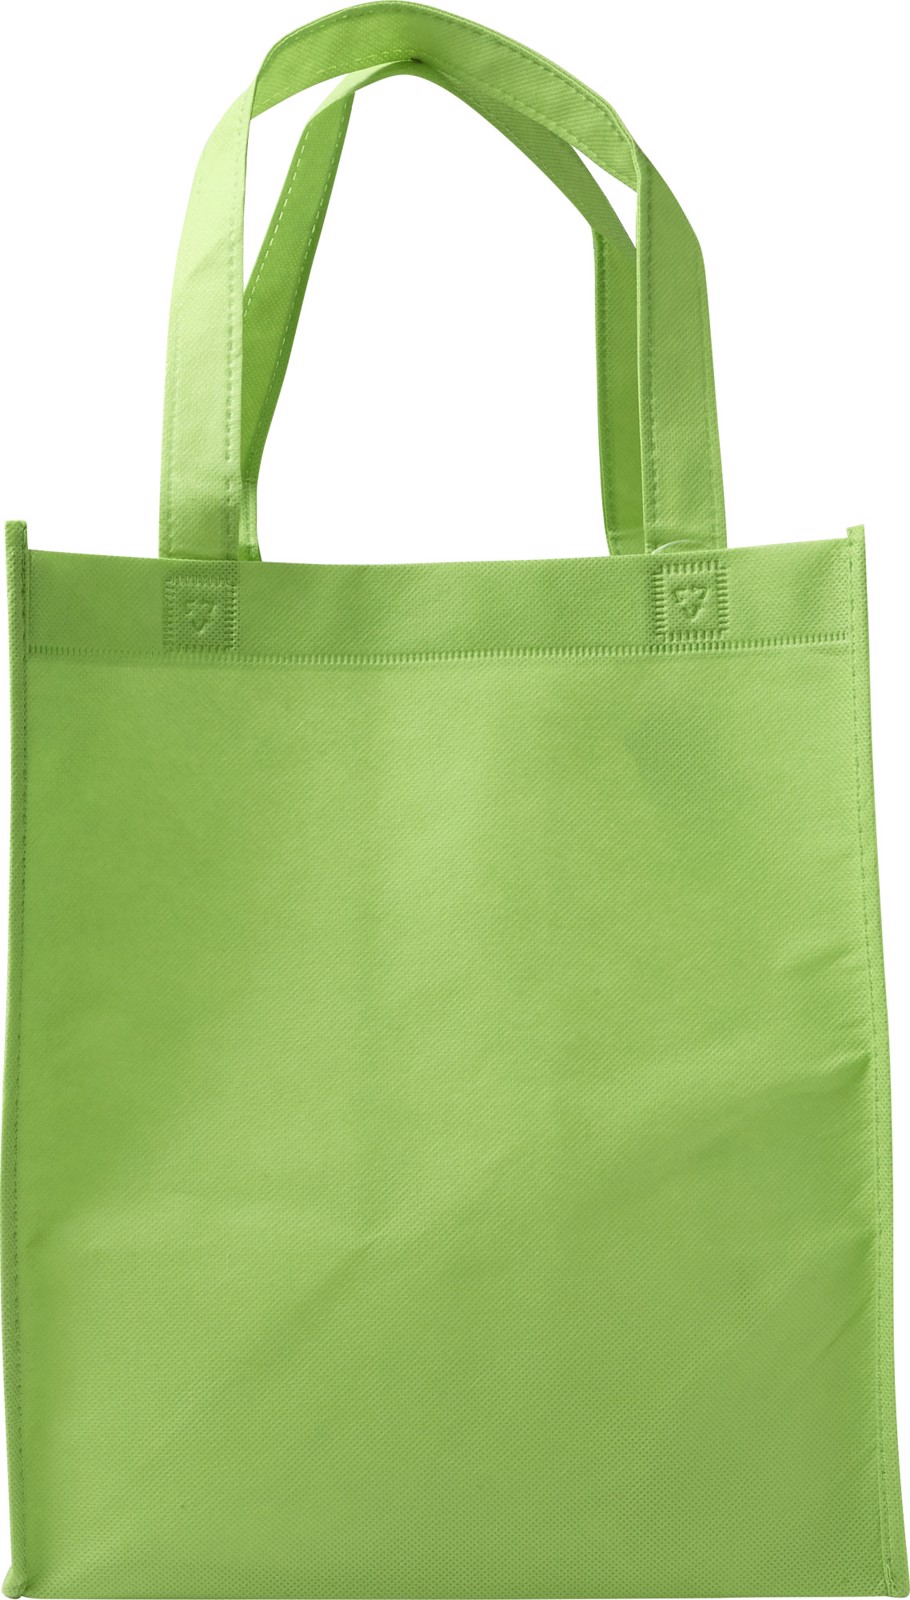 Nonwoven (80 gr/m²) shopping bag. - Lime